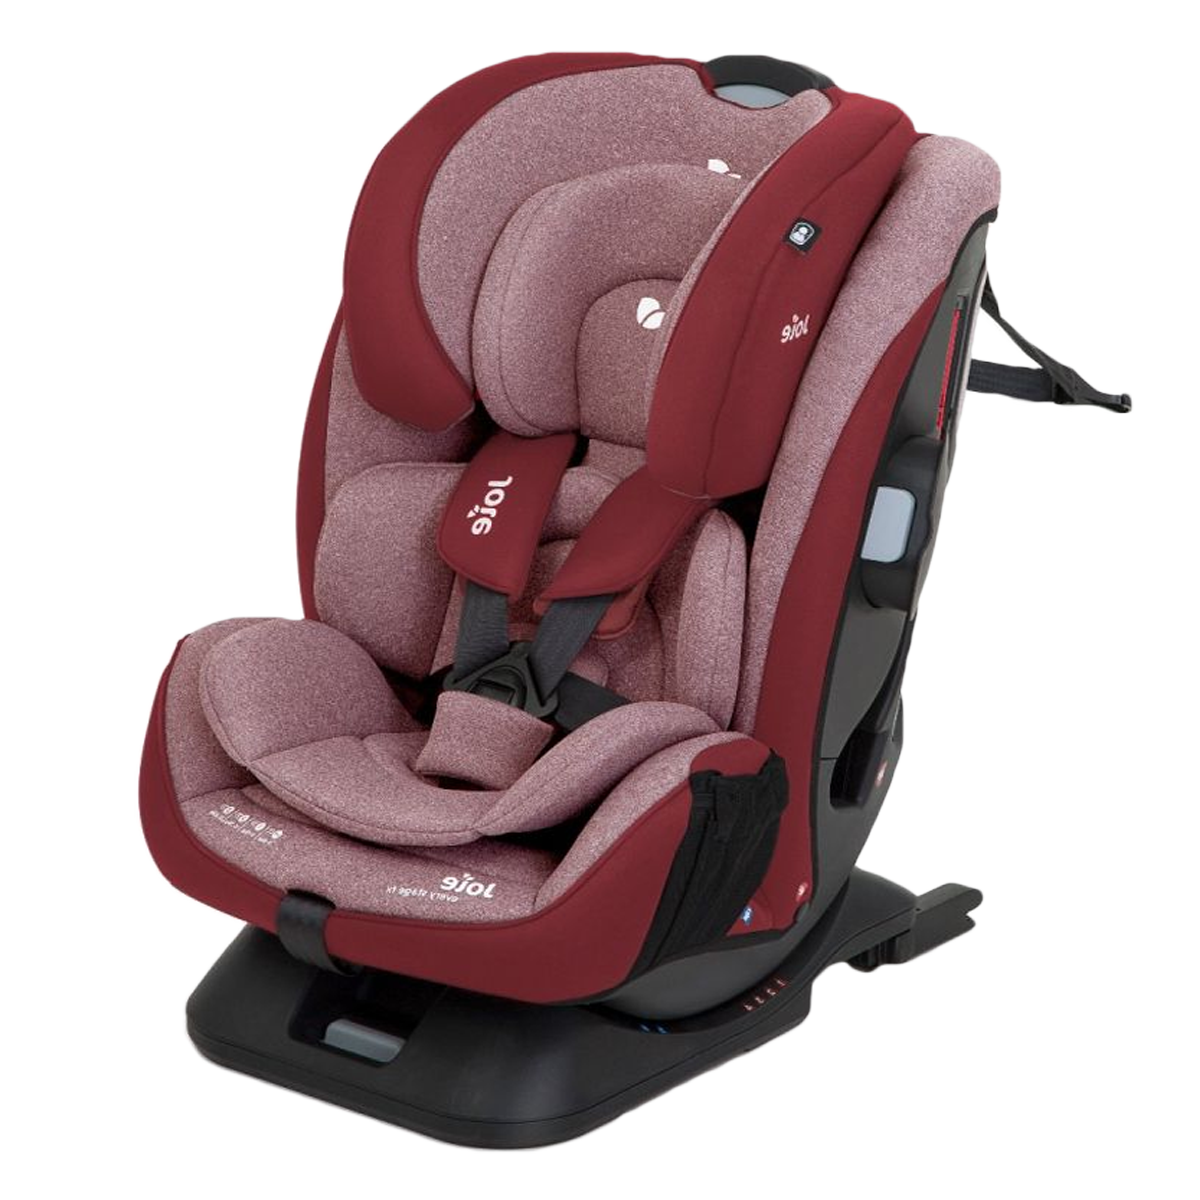 EVERY STAGE FX CRANBERRY - Kico Baby Center